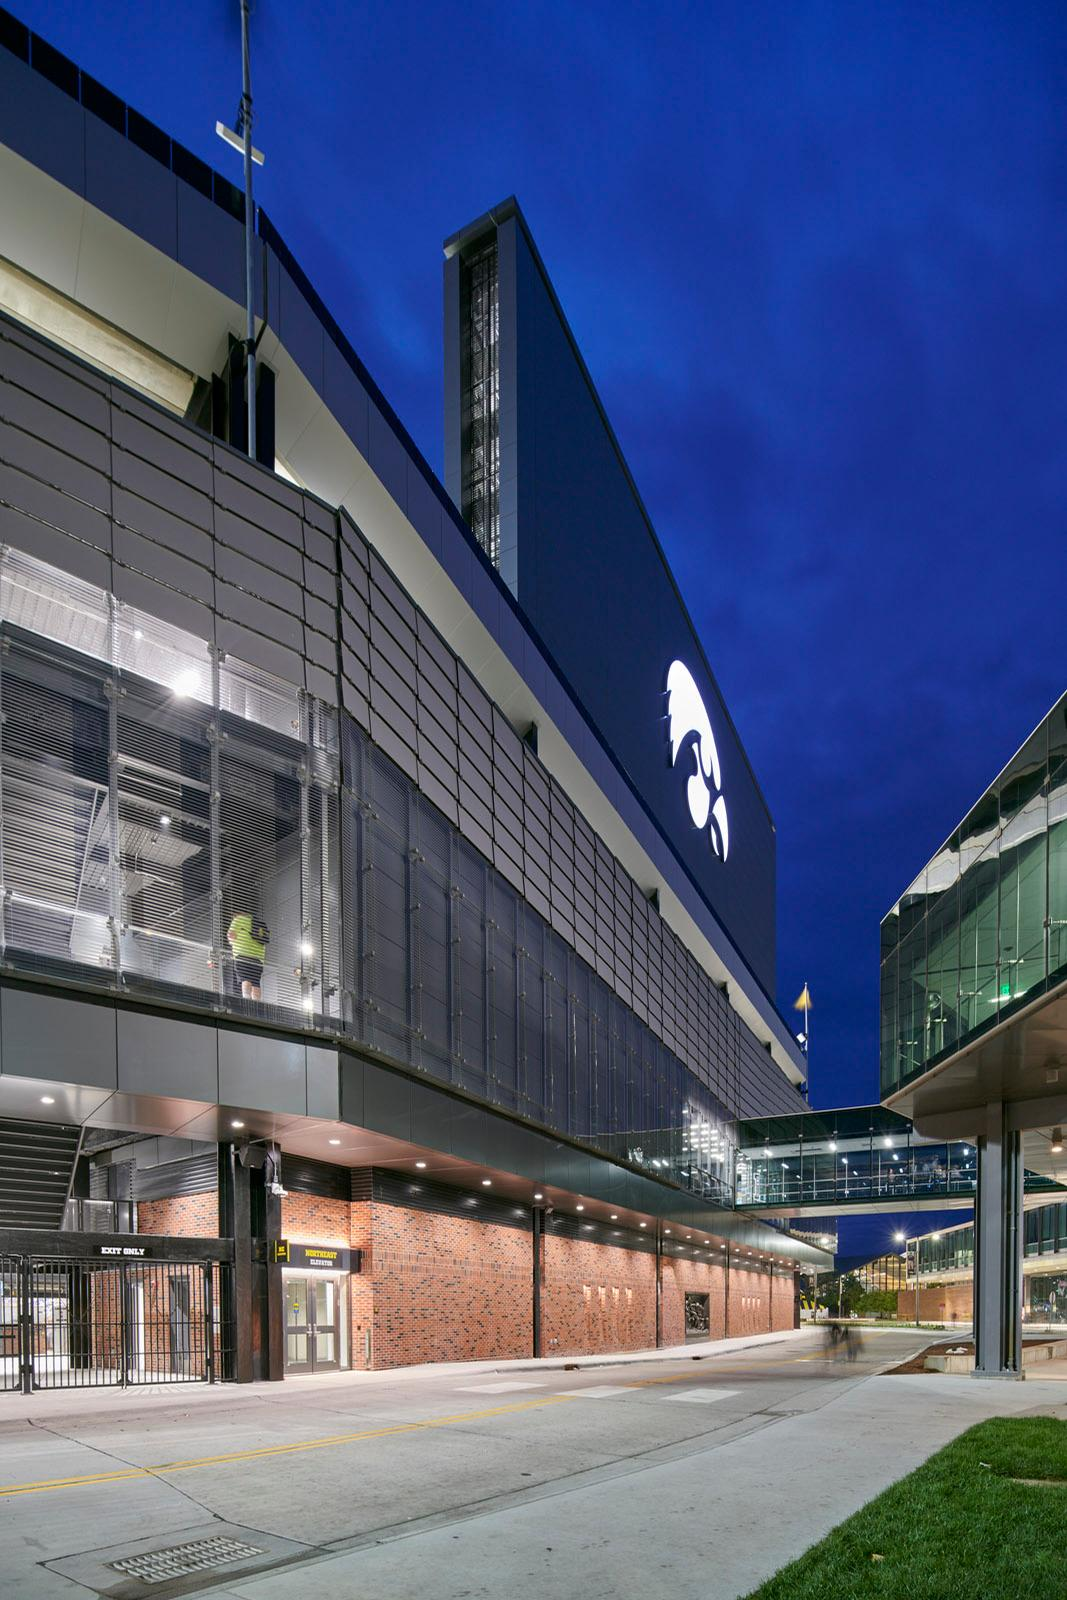 The renovation was designed by Neumann Monson Architects and HNTB Sports Architecture / Cameron Campbell